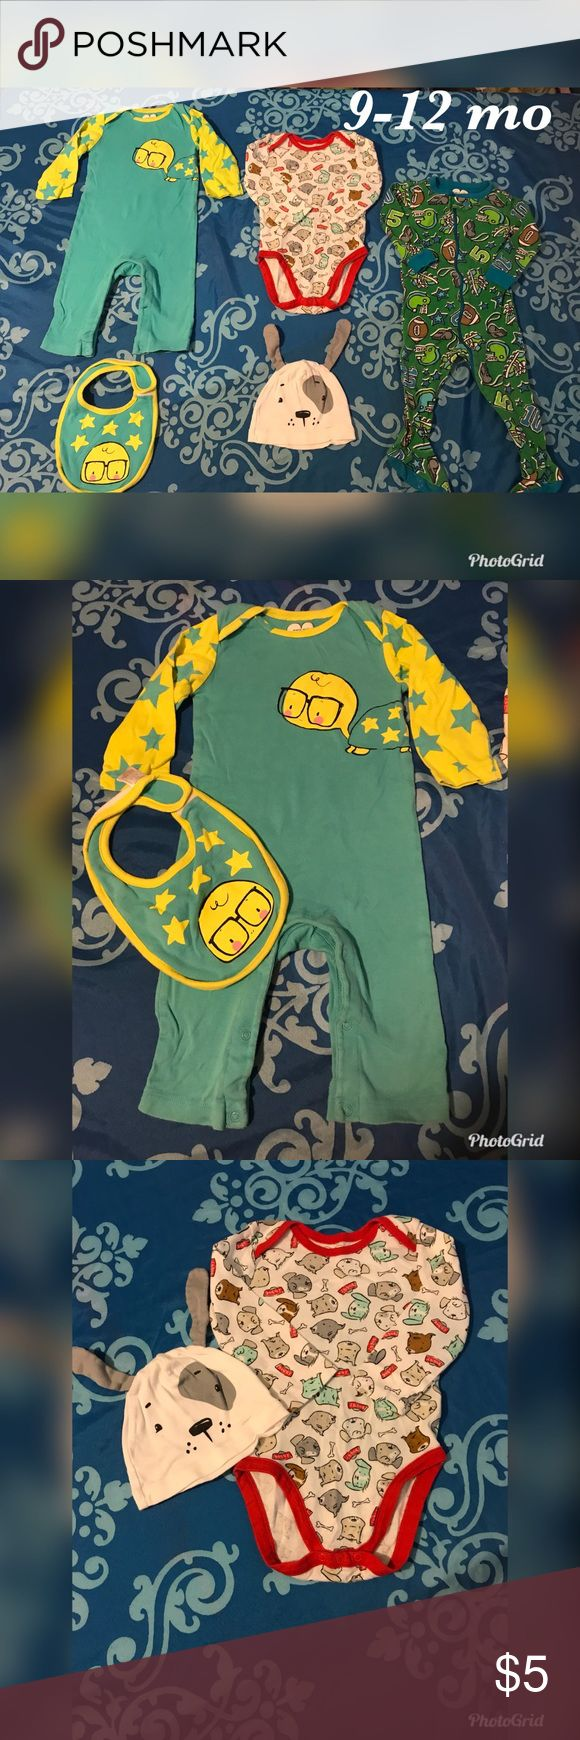 9-12 month Bundle #1 Brand: Children's Place  GUC, no holes or stains. Please enhance pictures to see condition before buying. Bundle & Save:)) Children's Place Matching Sets